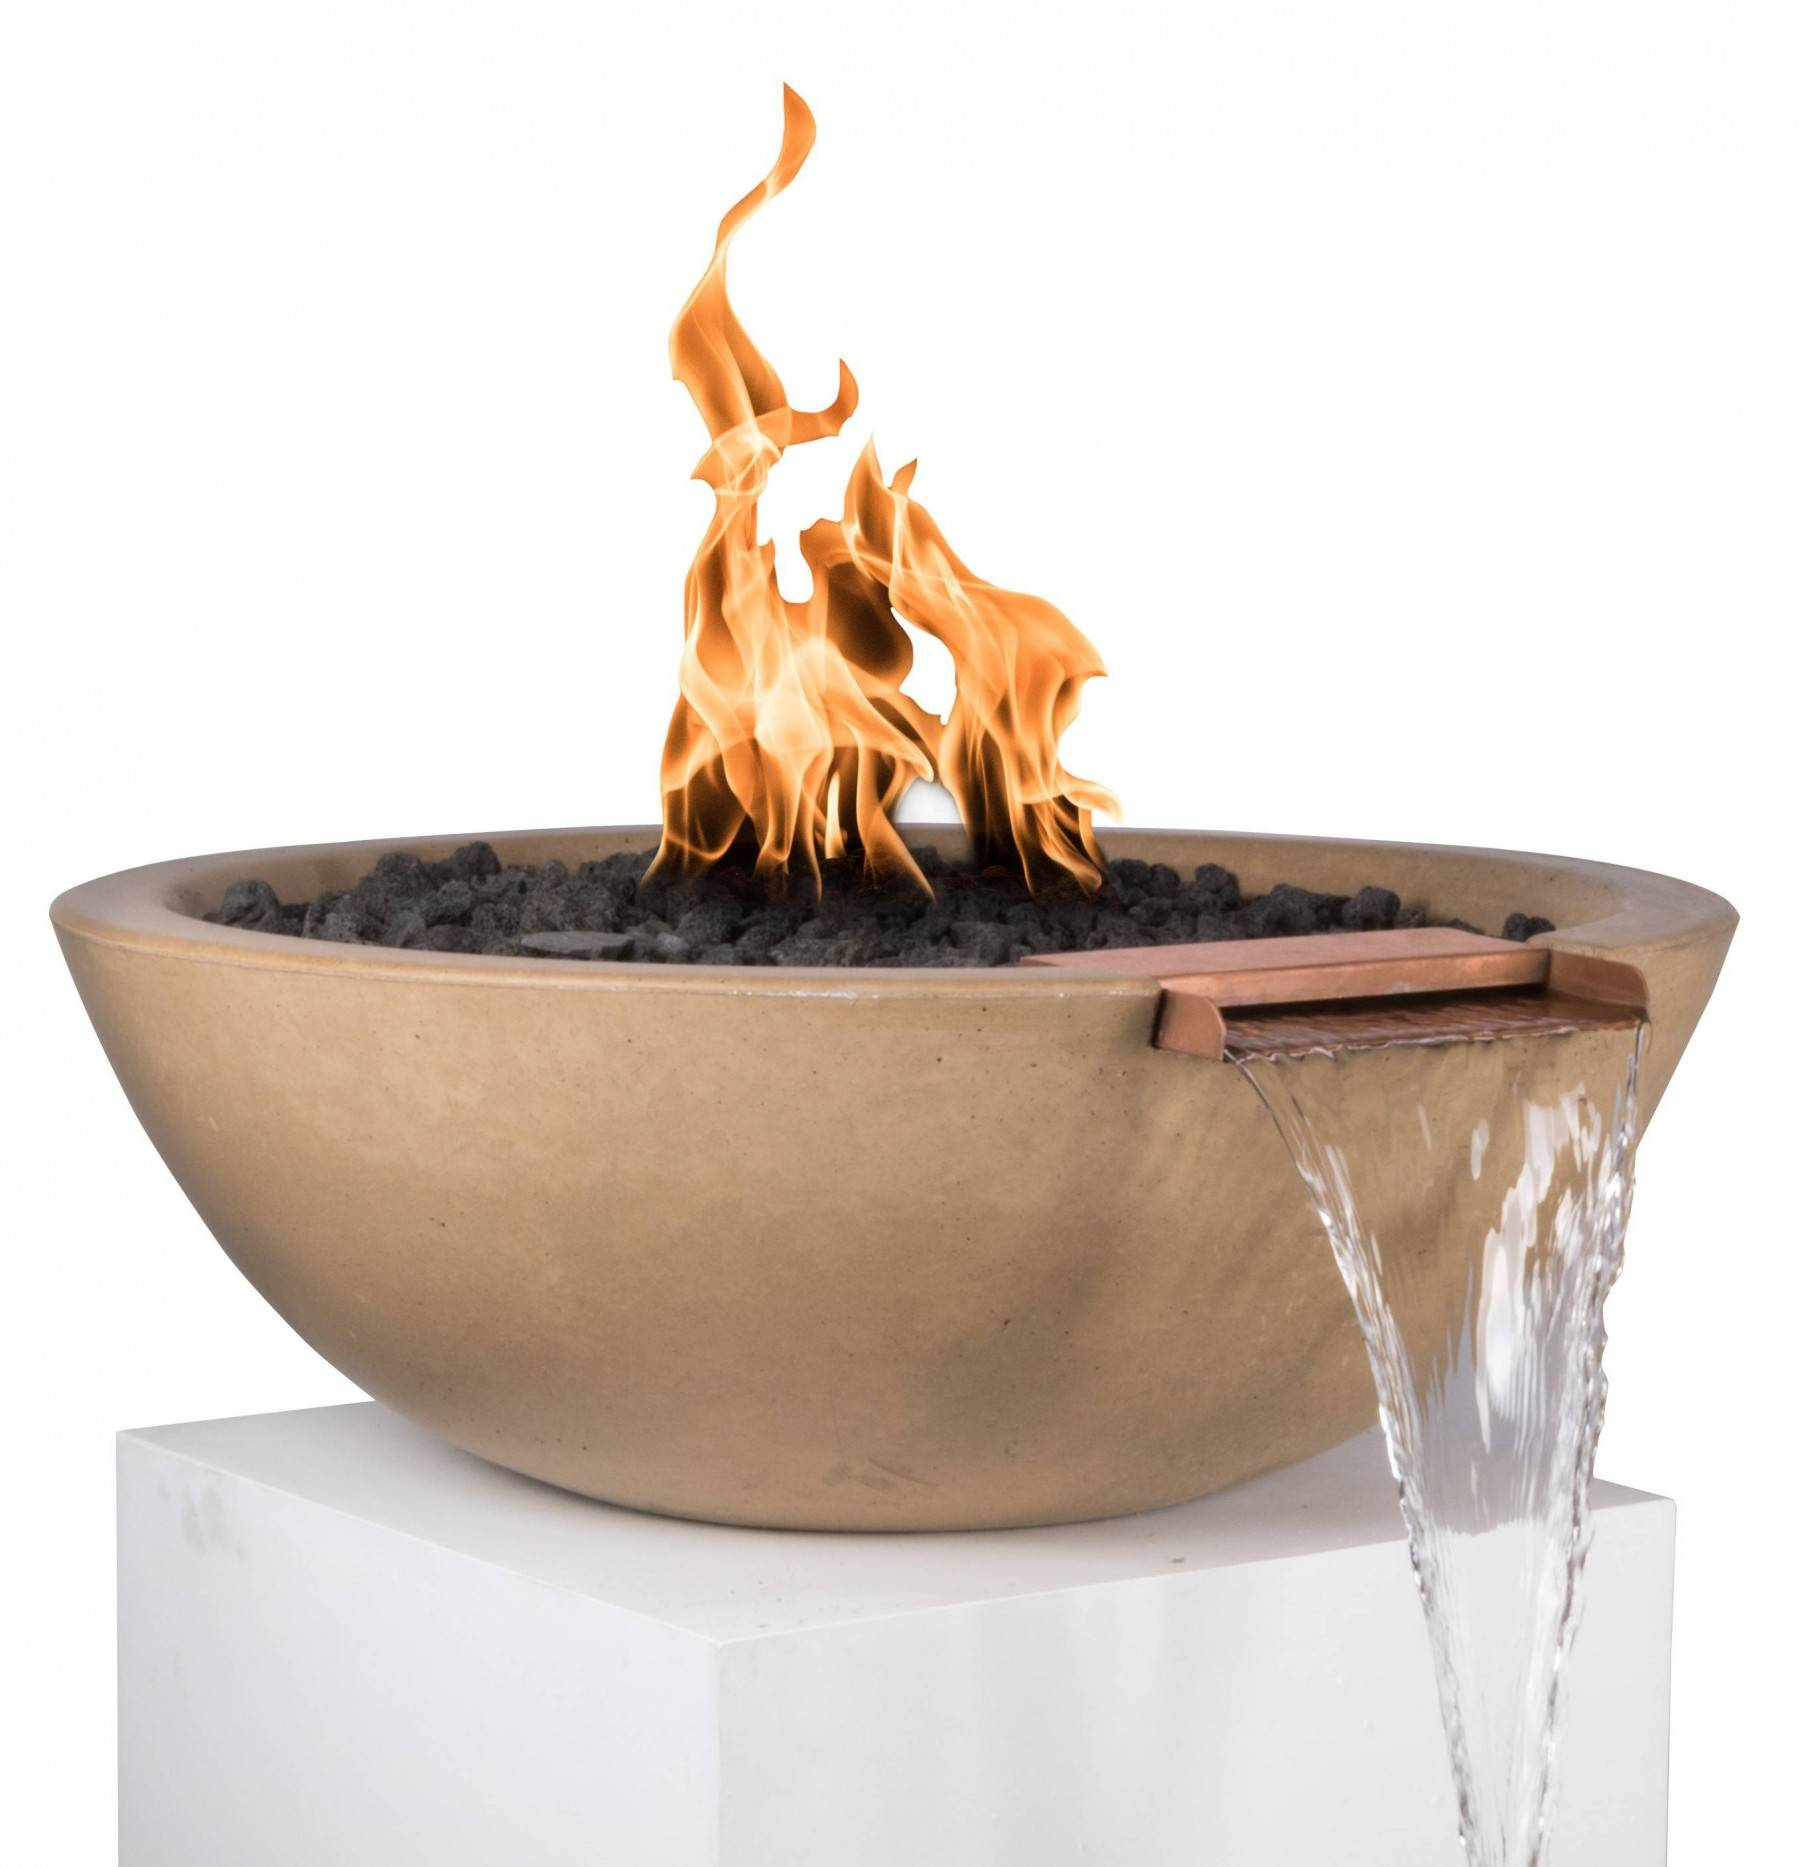 27 pool fire water bowl sedona pool fire bowls - Pool fire bowls ...